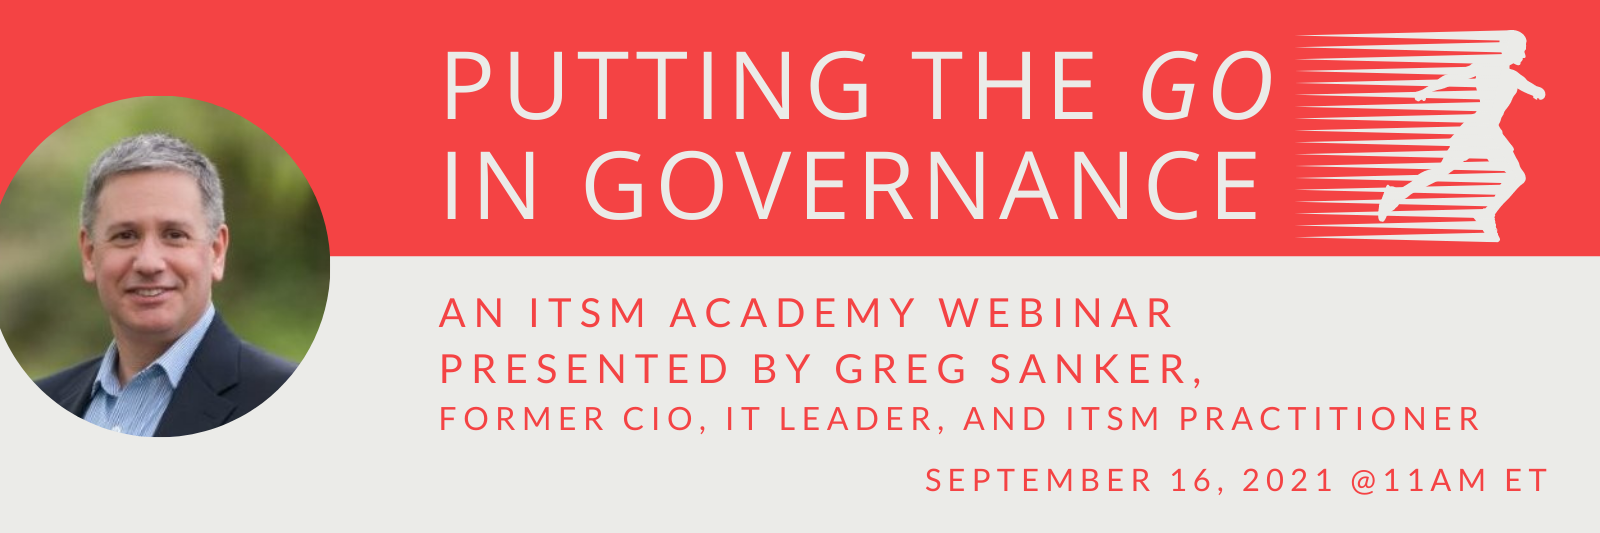 Putting the Go in Governance